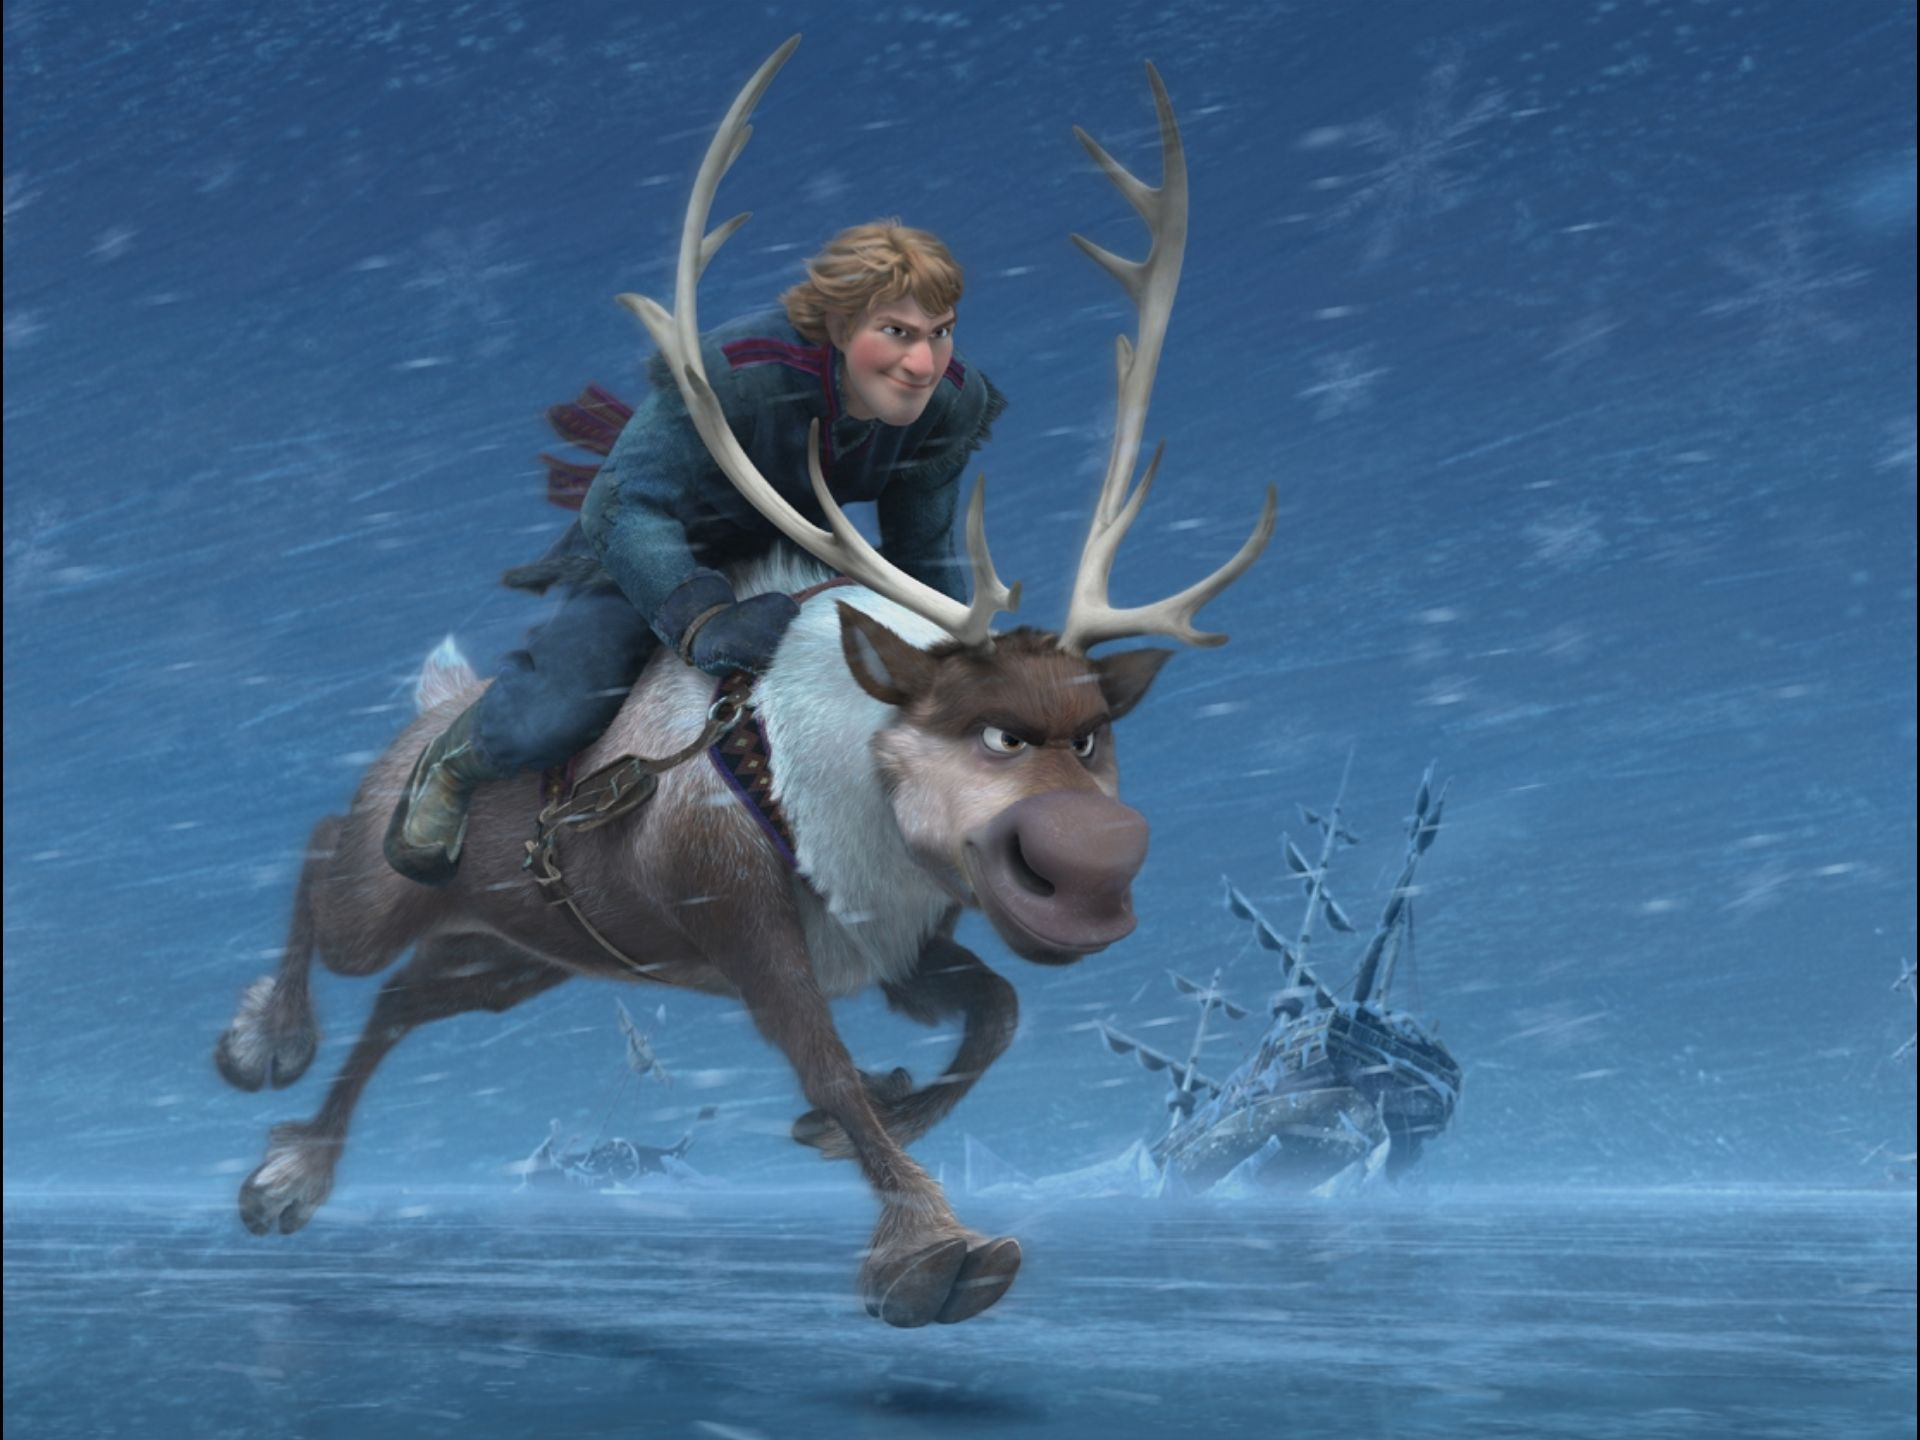 Disney's FROZEN Images. FROZEN Features The Voices Of Kristen Bell, Jonathan Groff, And Idina